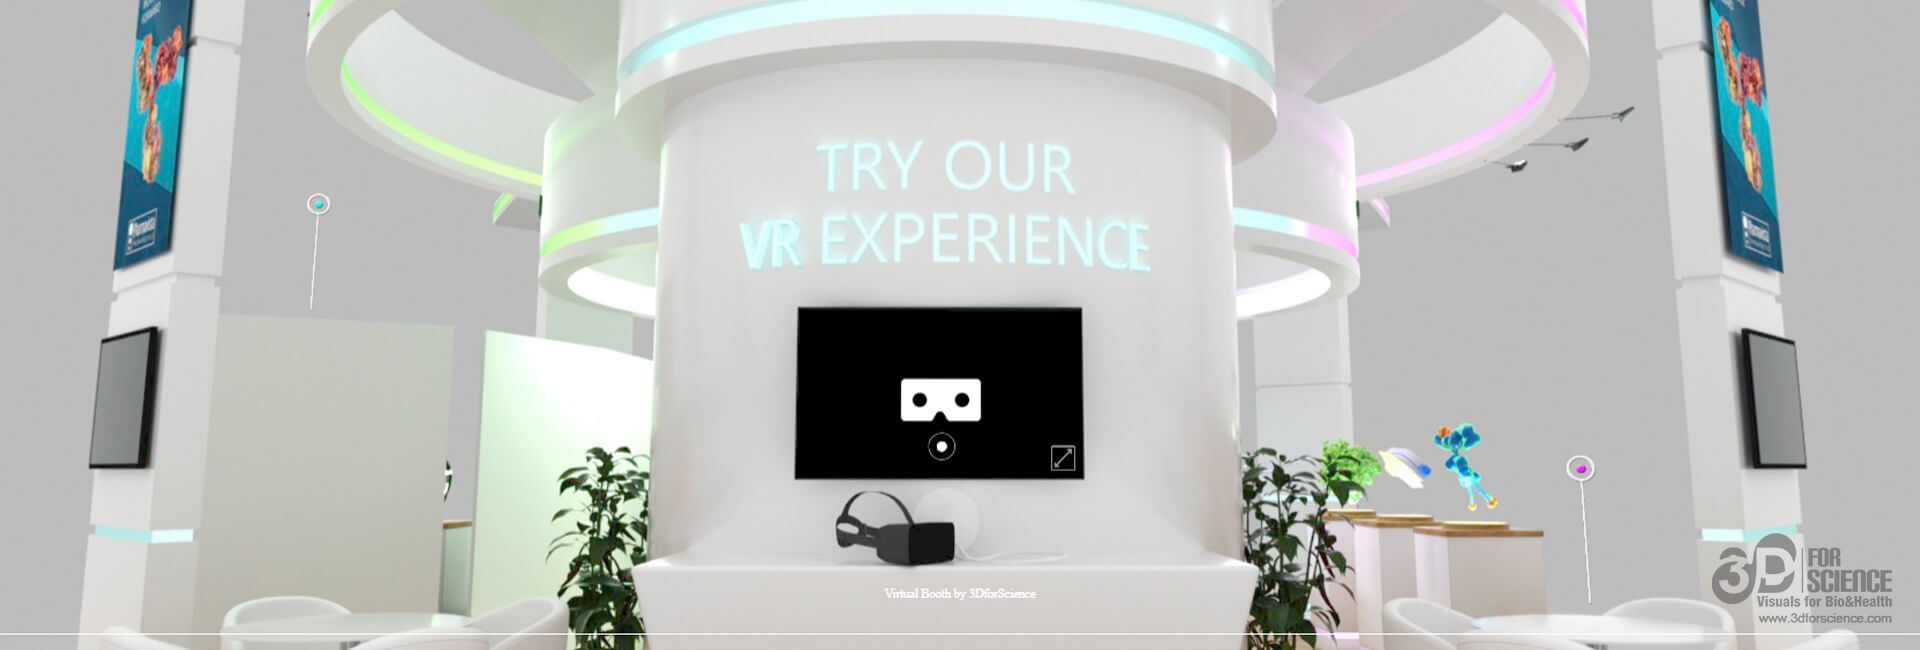 augmented reality virtual booth